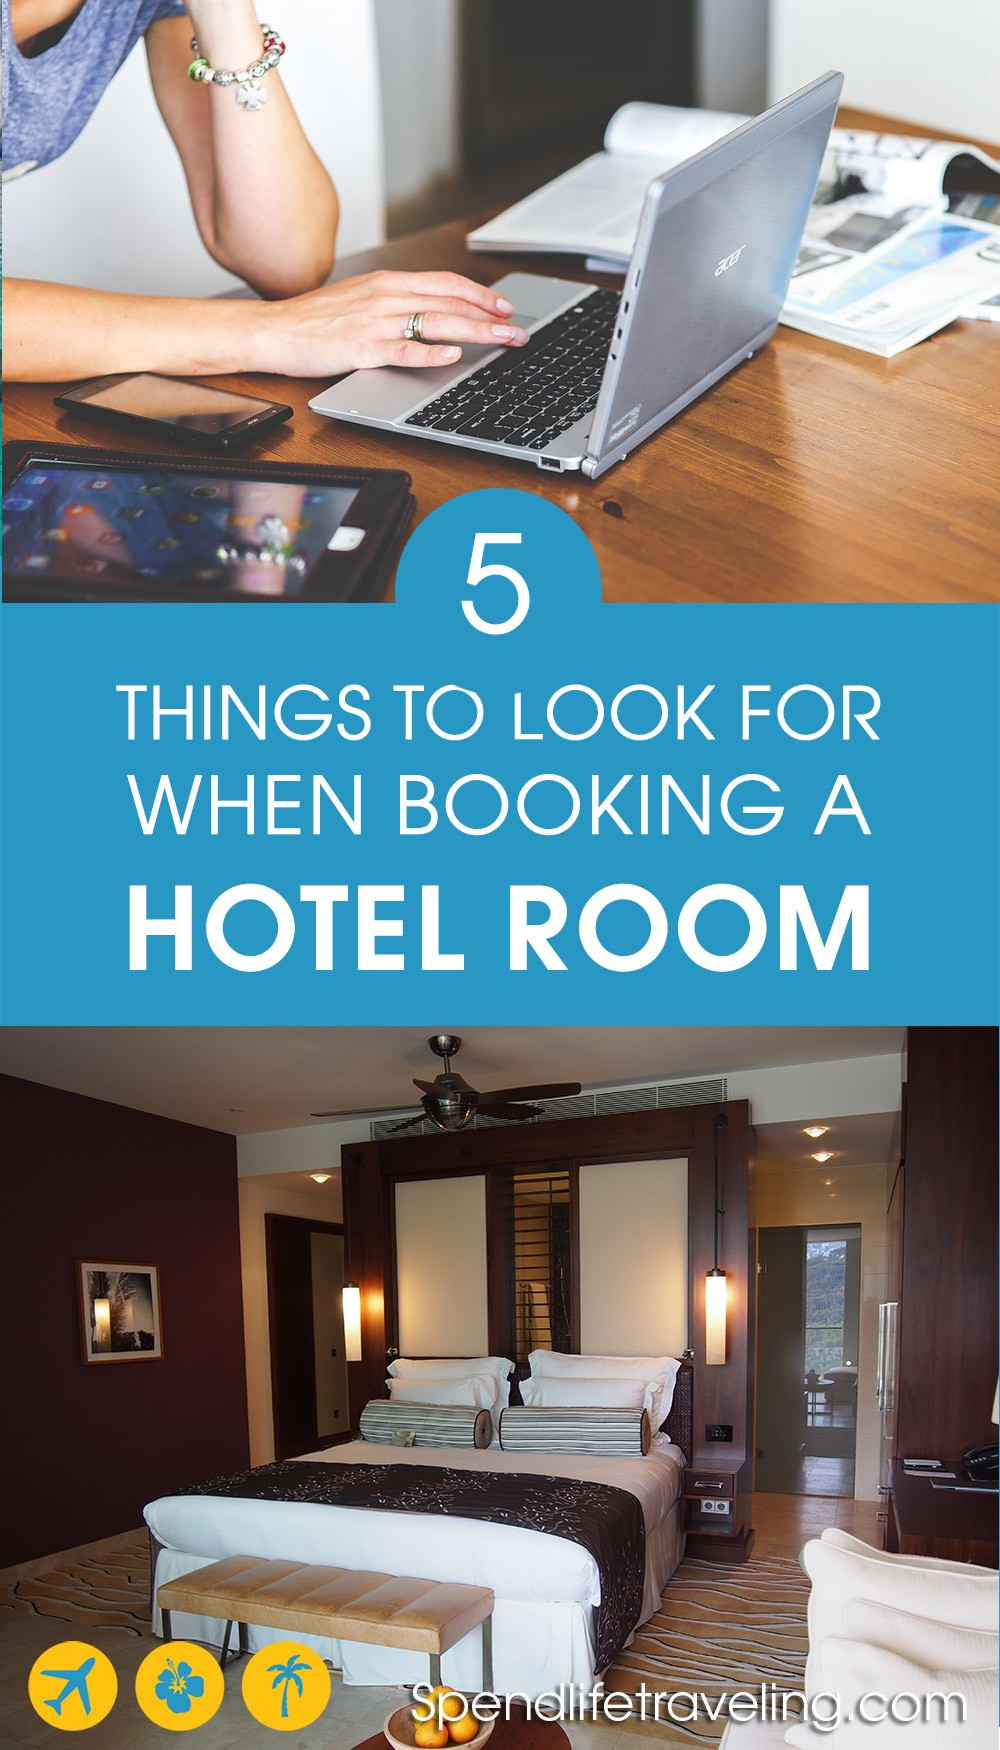 Most_important_things_to_look_for_when_booking_hotel_room